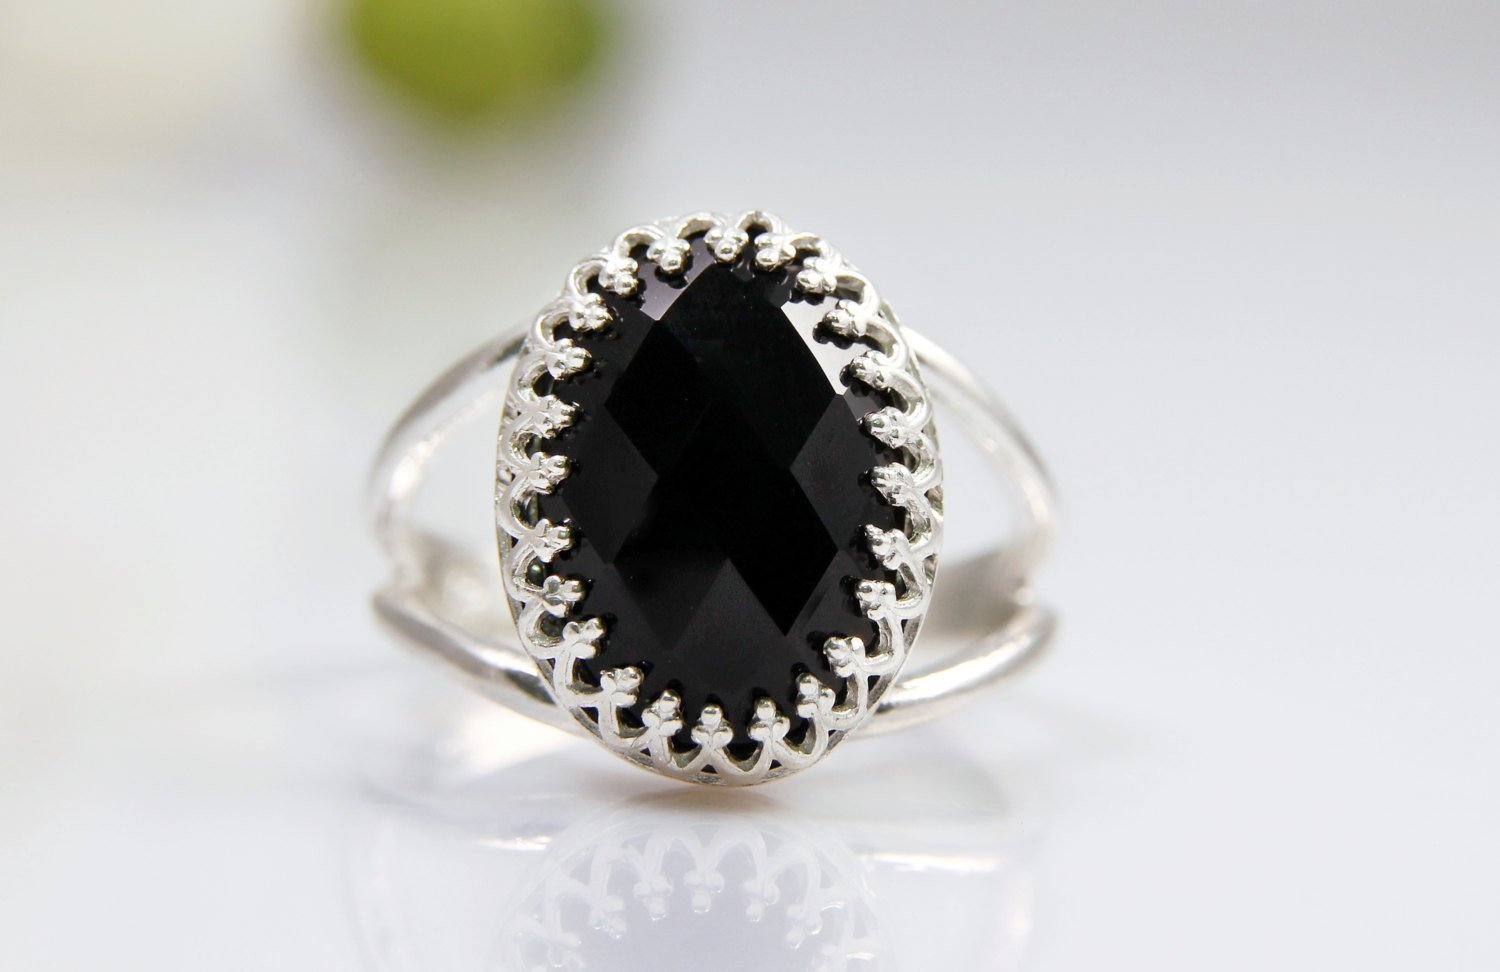 black onyx gemstone ring, silver ring, oval ring, black ring, black and silver jewelry, onyx ring, sterling silver ring